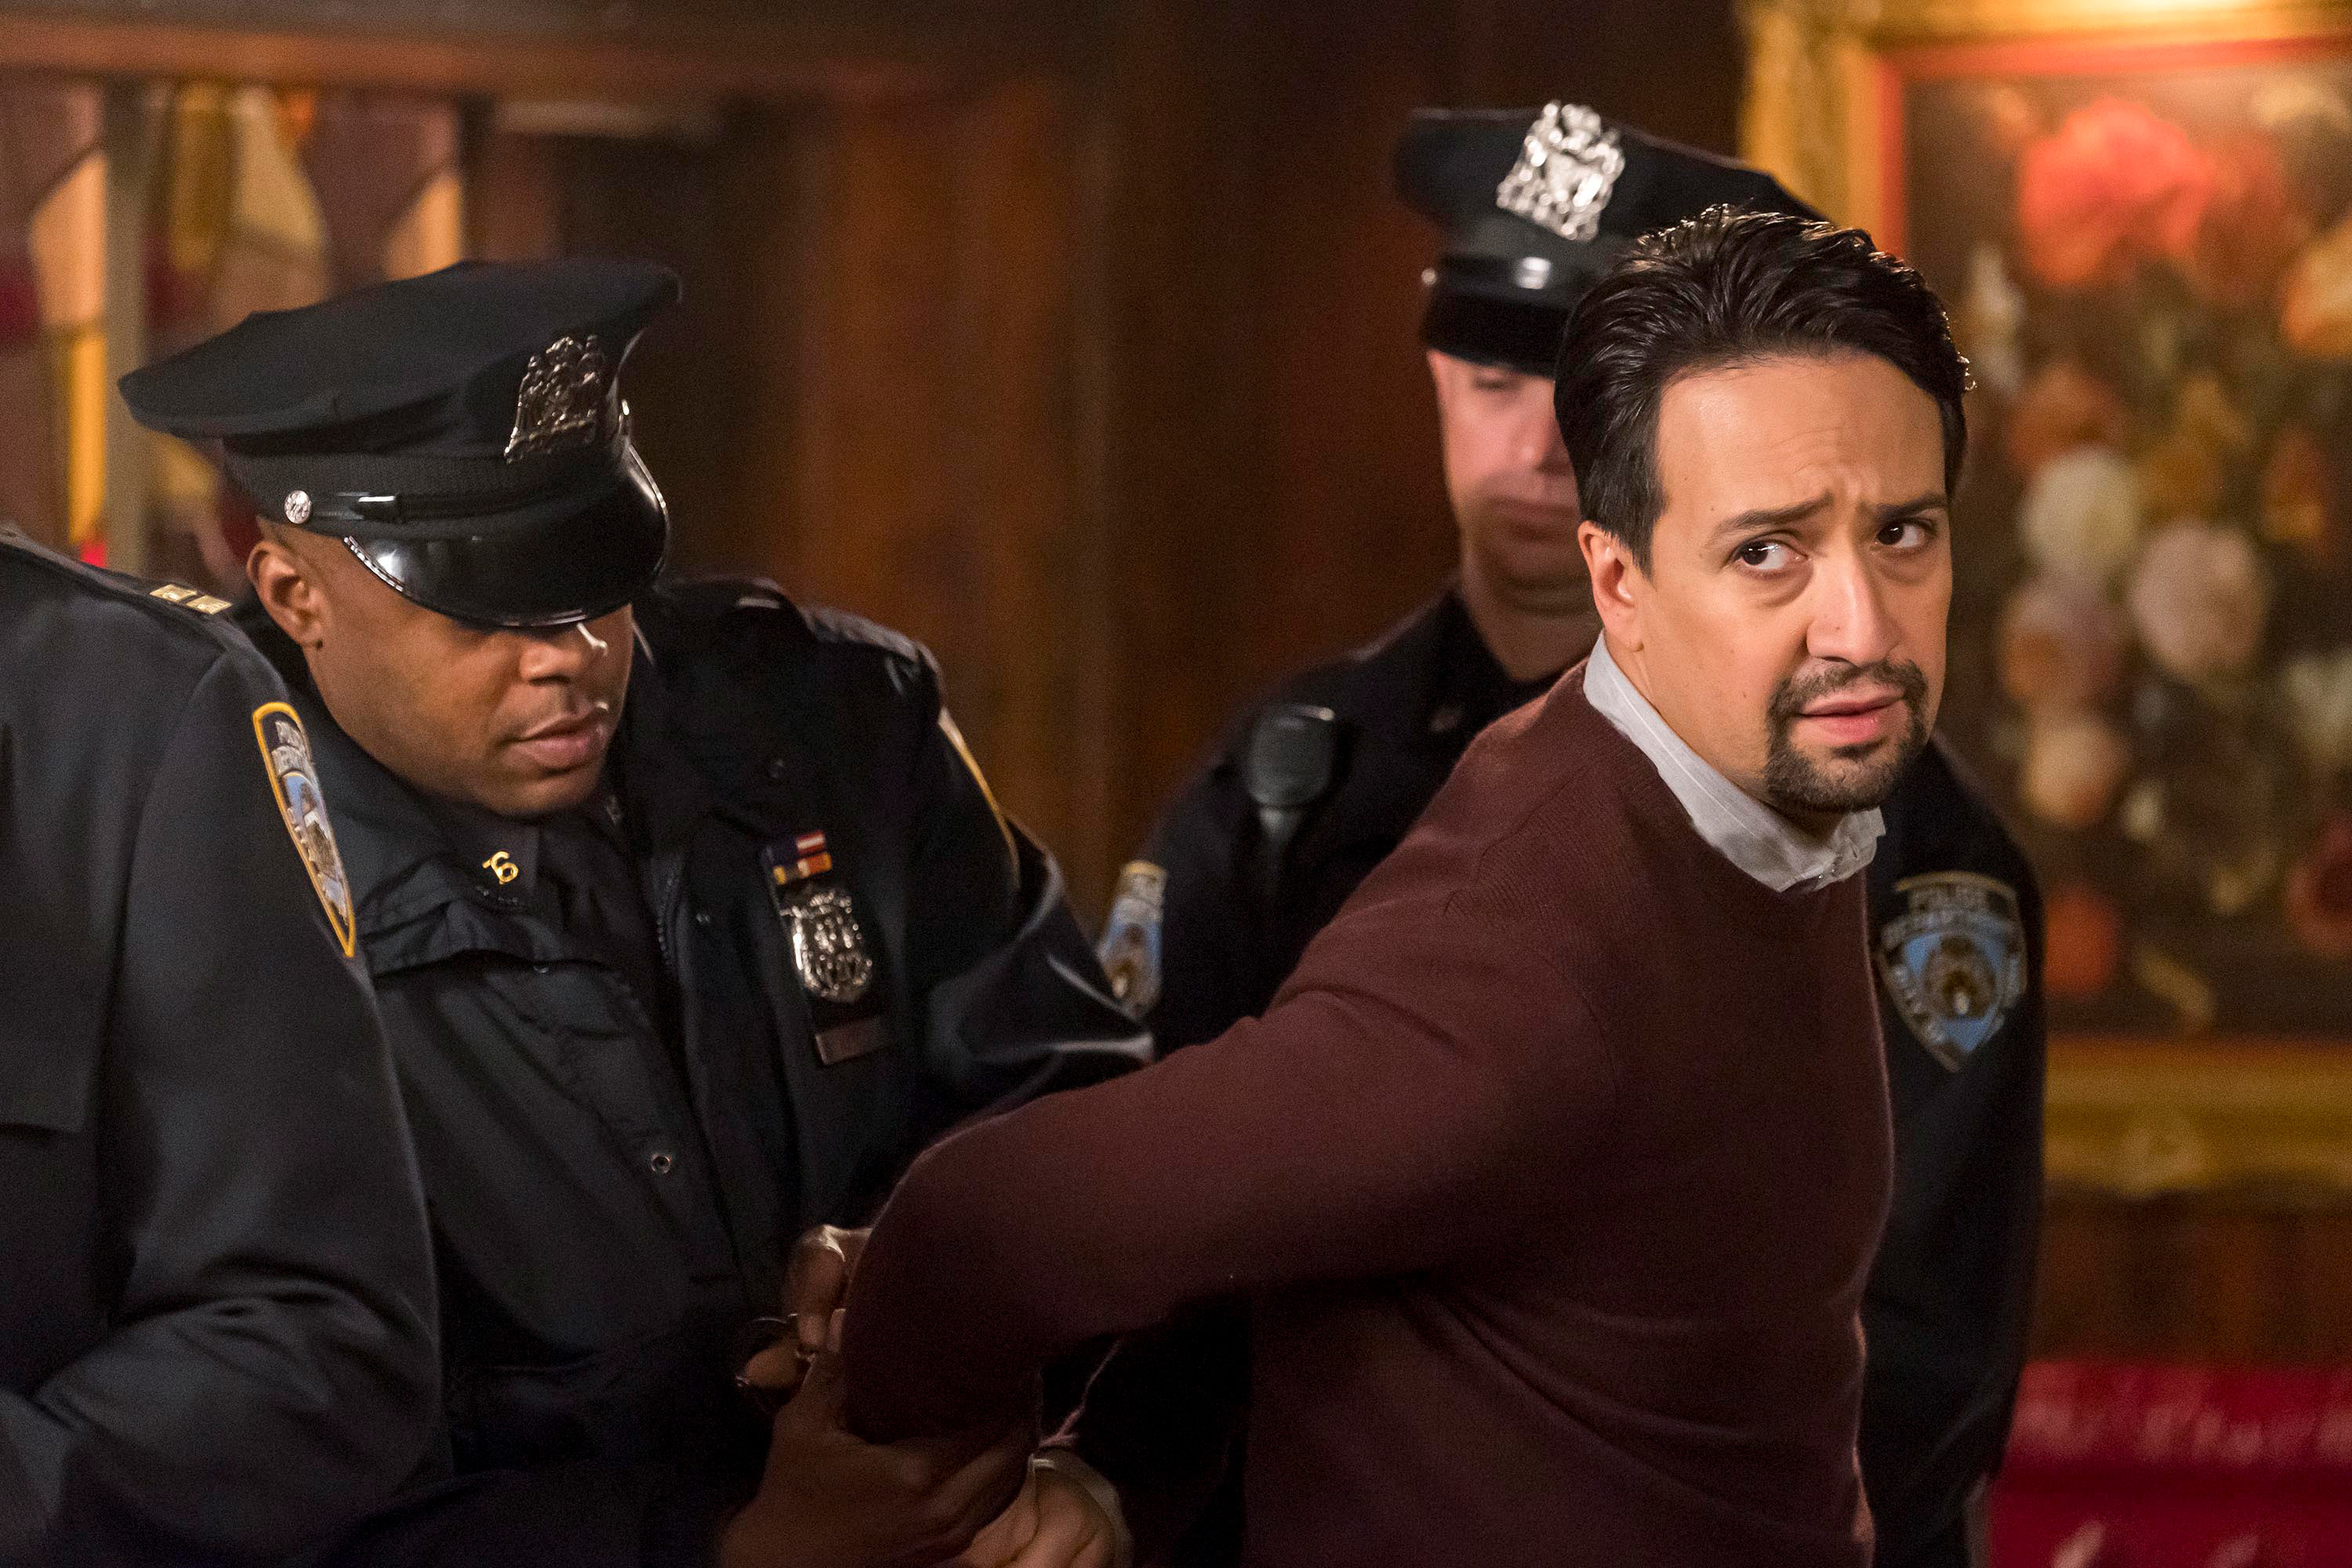 Lin-Manuel Miranda being arrested on the show